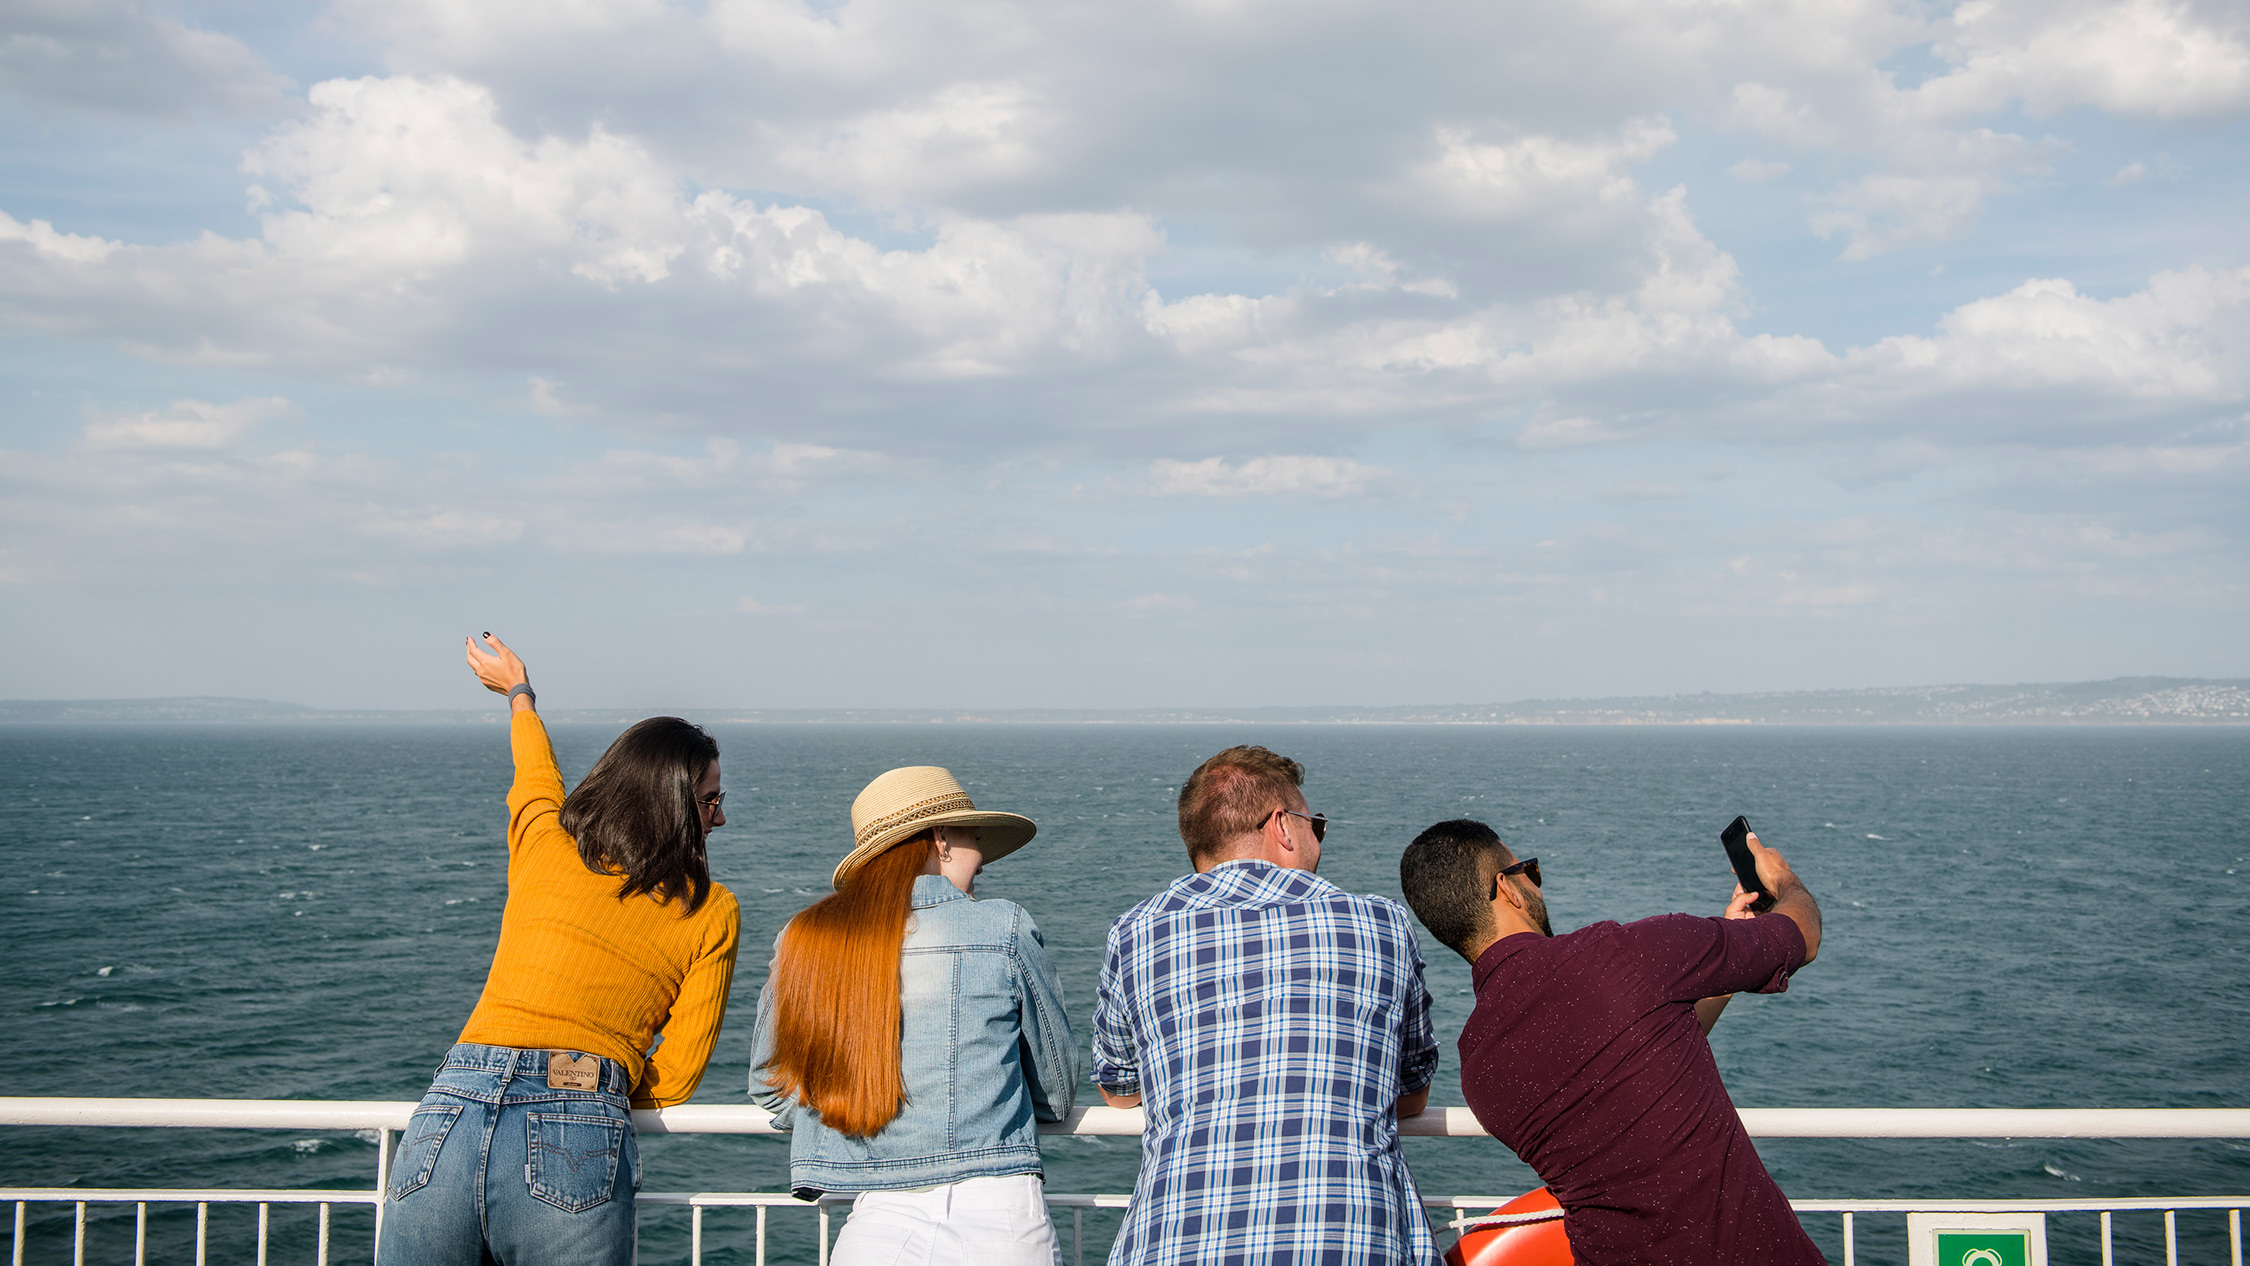 Four travellers looking out to the Bay on the Spirit of Tasmania